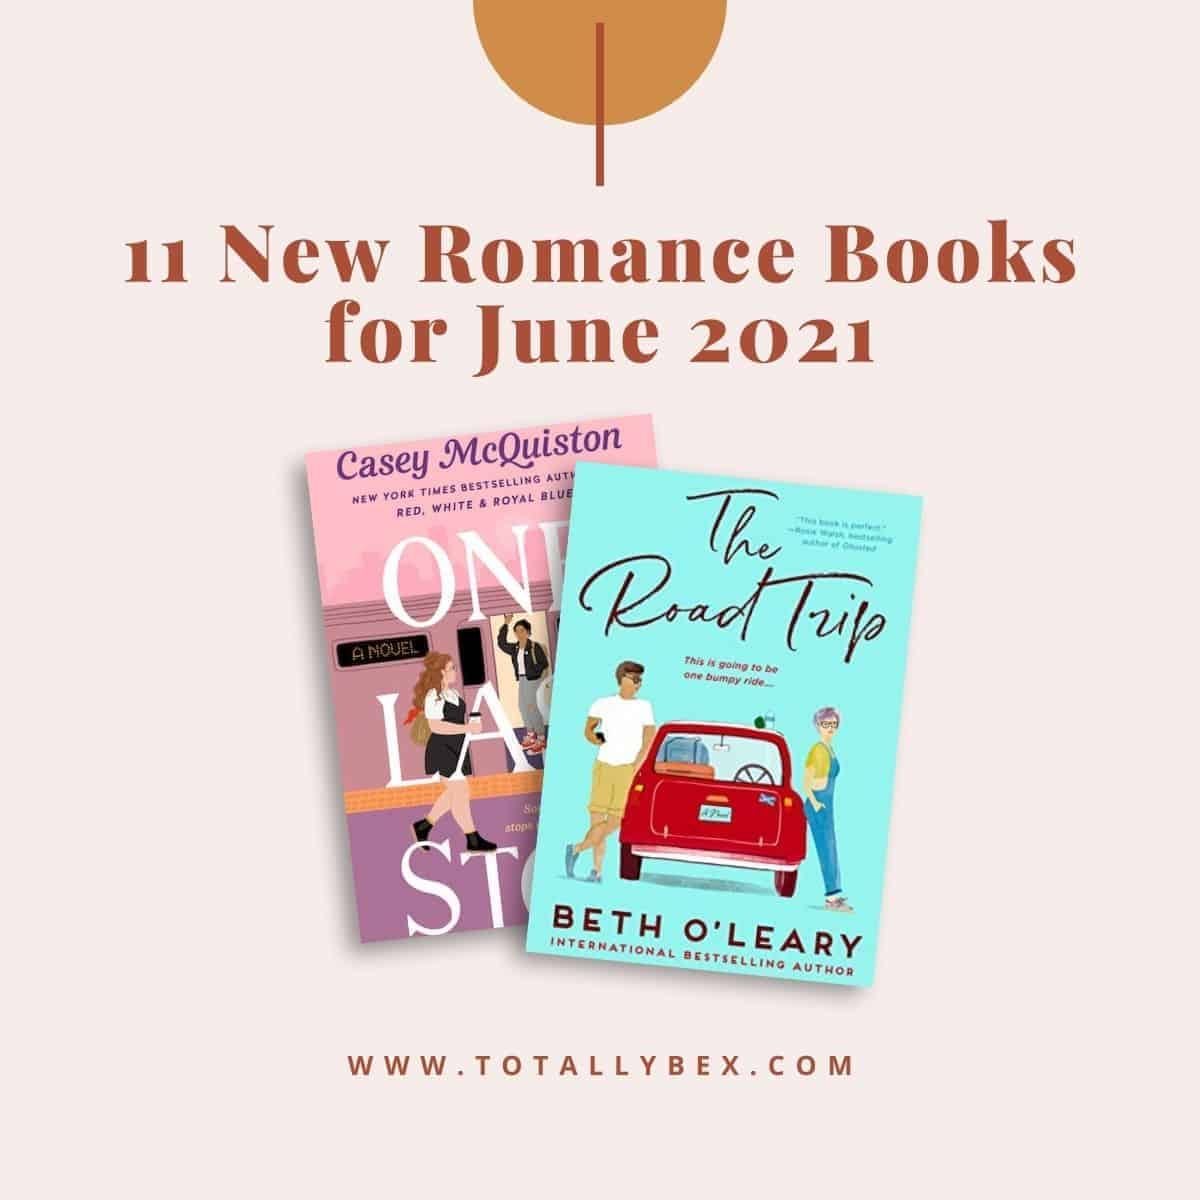 11 New Romance Books for June 2021 is a curated list of contemporary romance books, historical romance, and fantasy romance to add to your TBR!